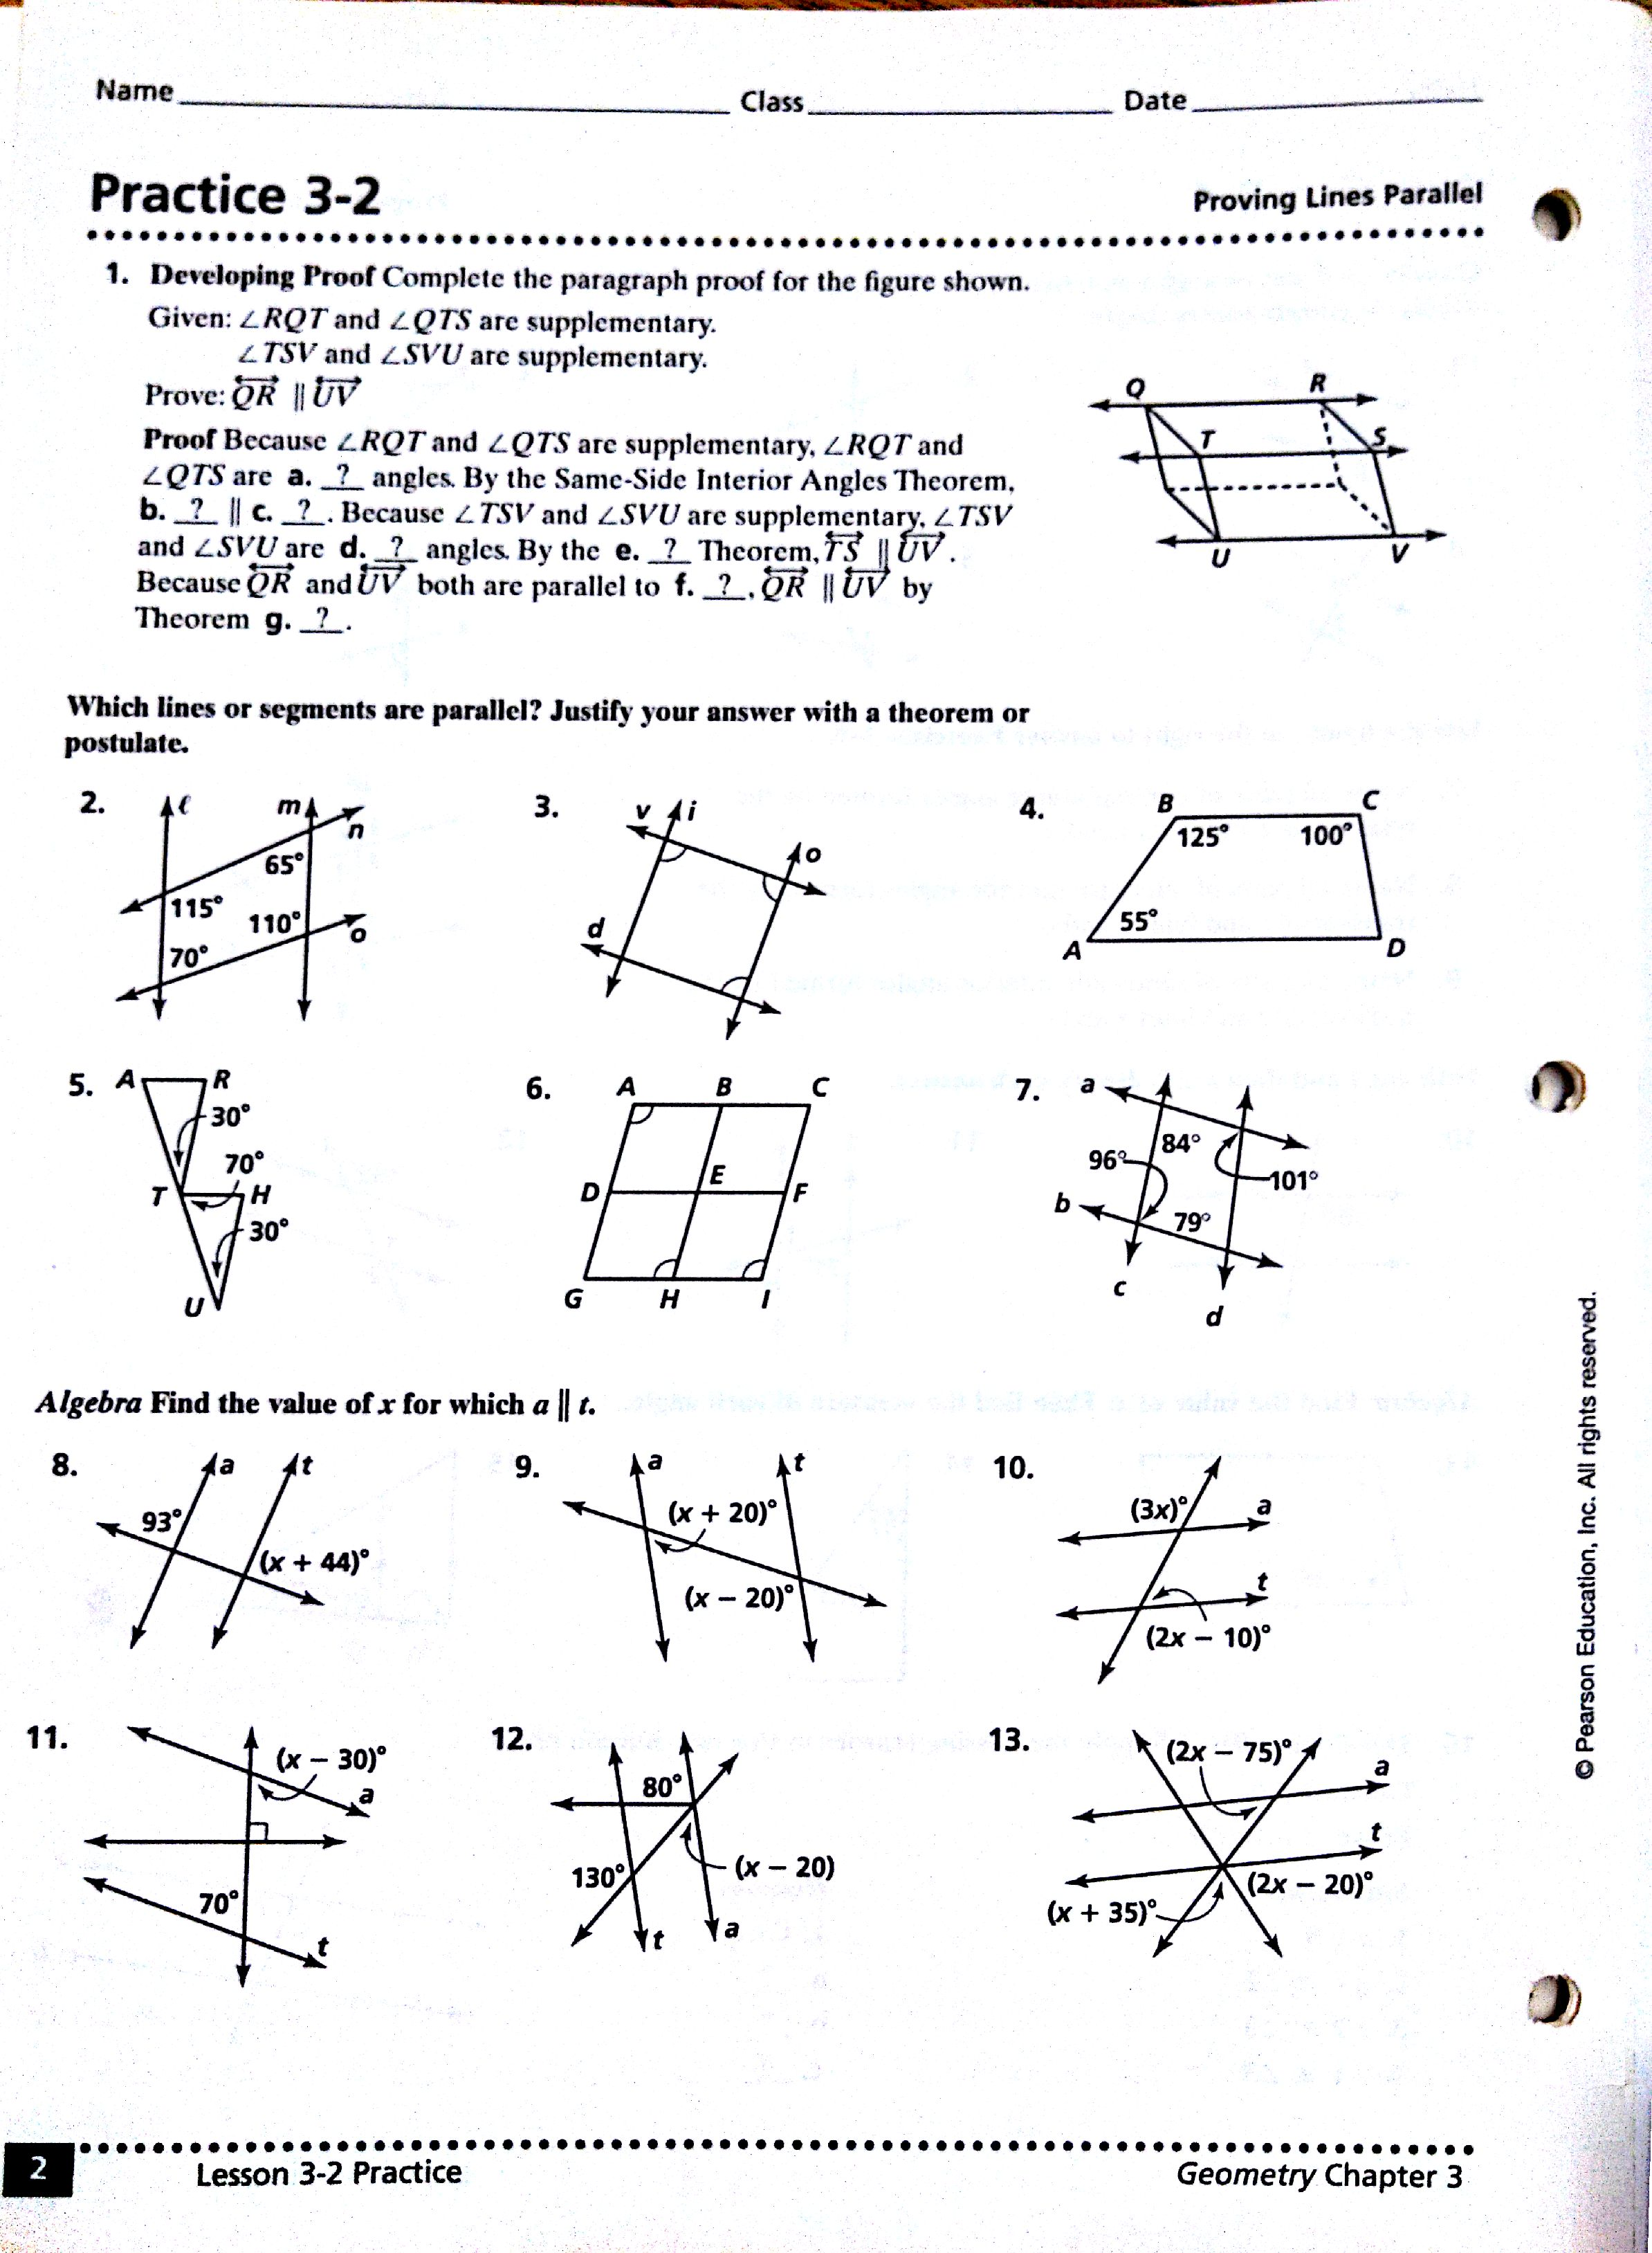 Worksheets Geometry Worksheet Congruent Triangles Answers worksheets math with mrs casillas practice 3 2 triangle congruence proofs